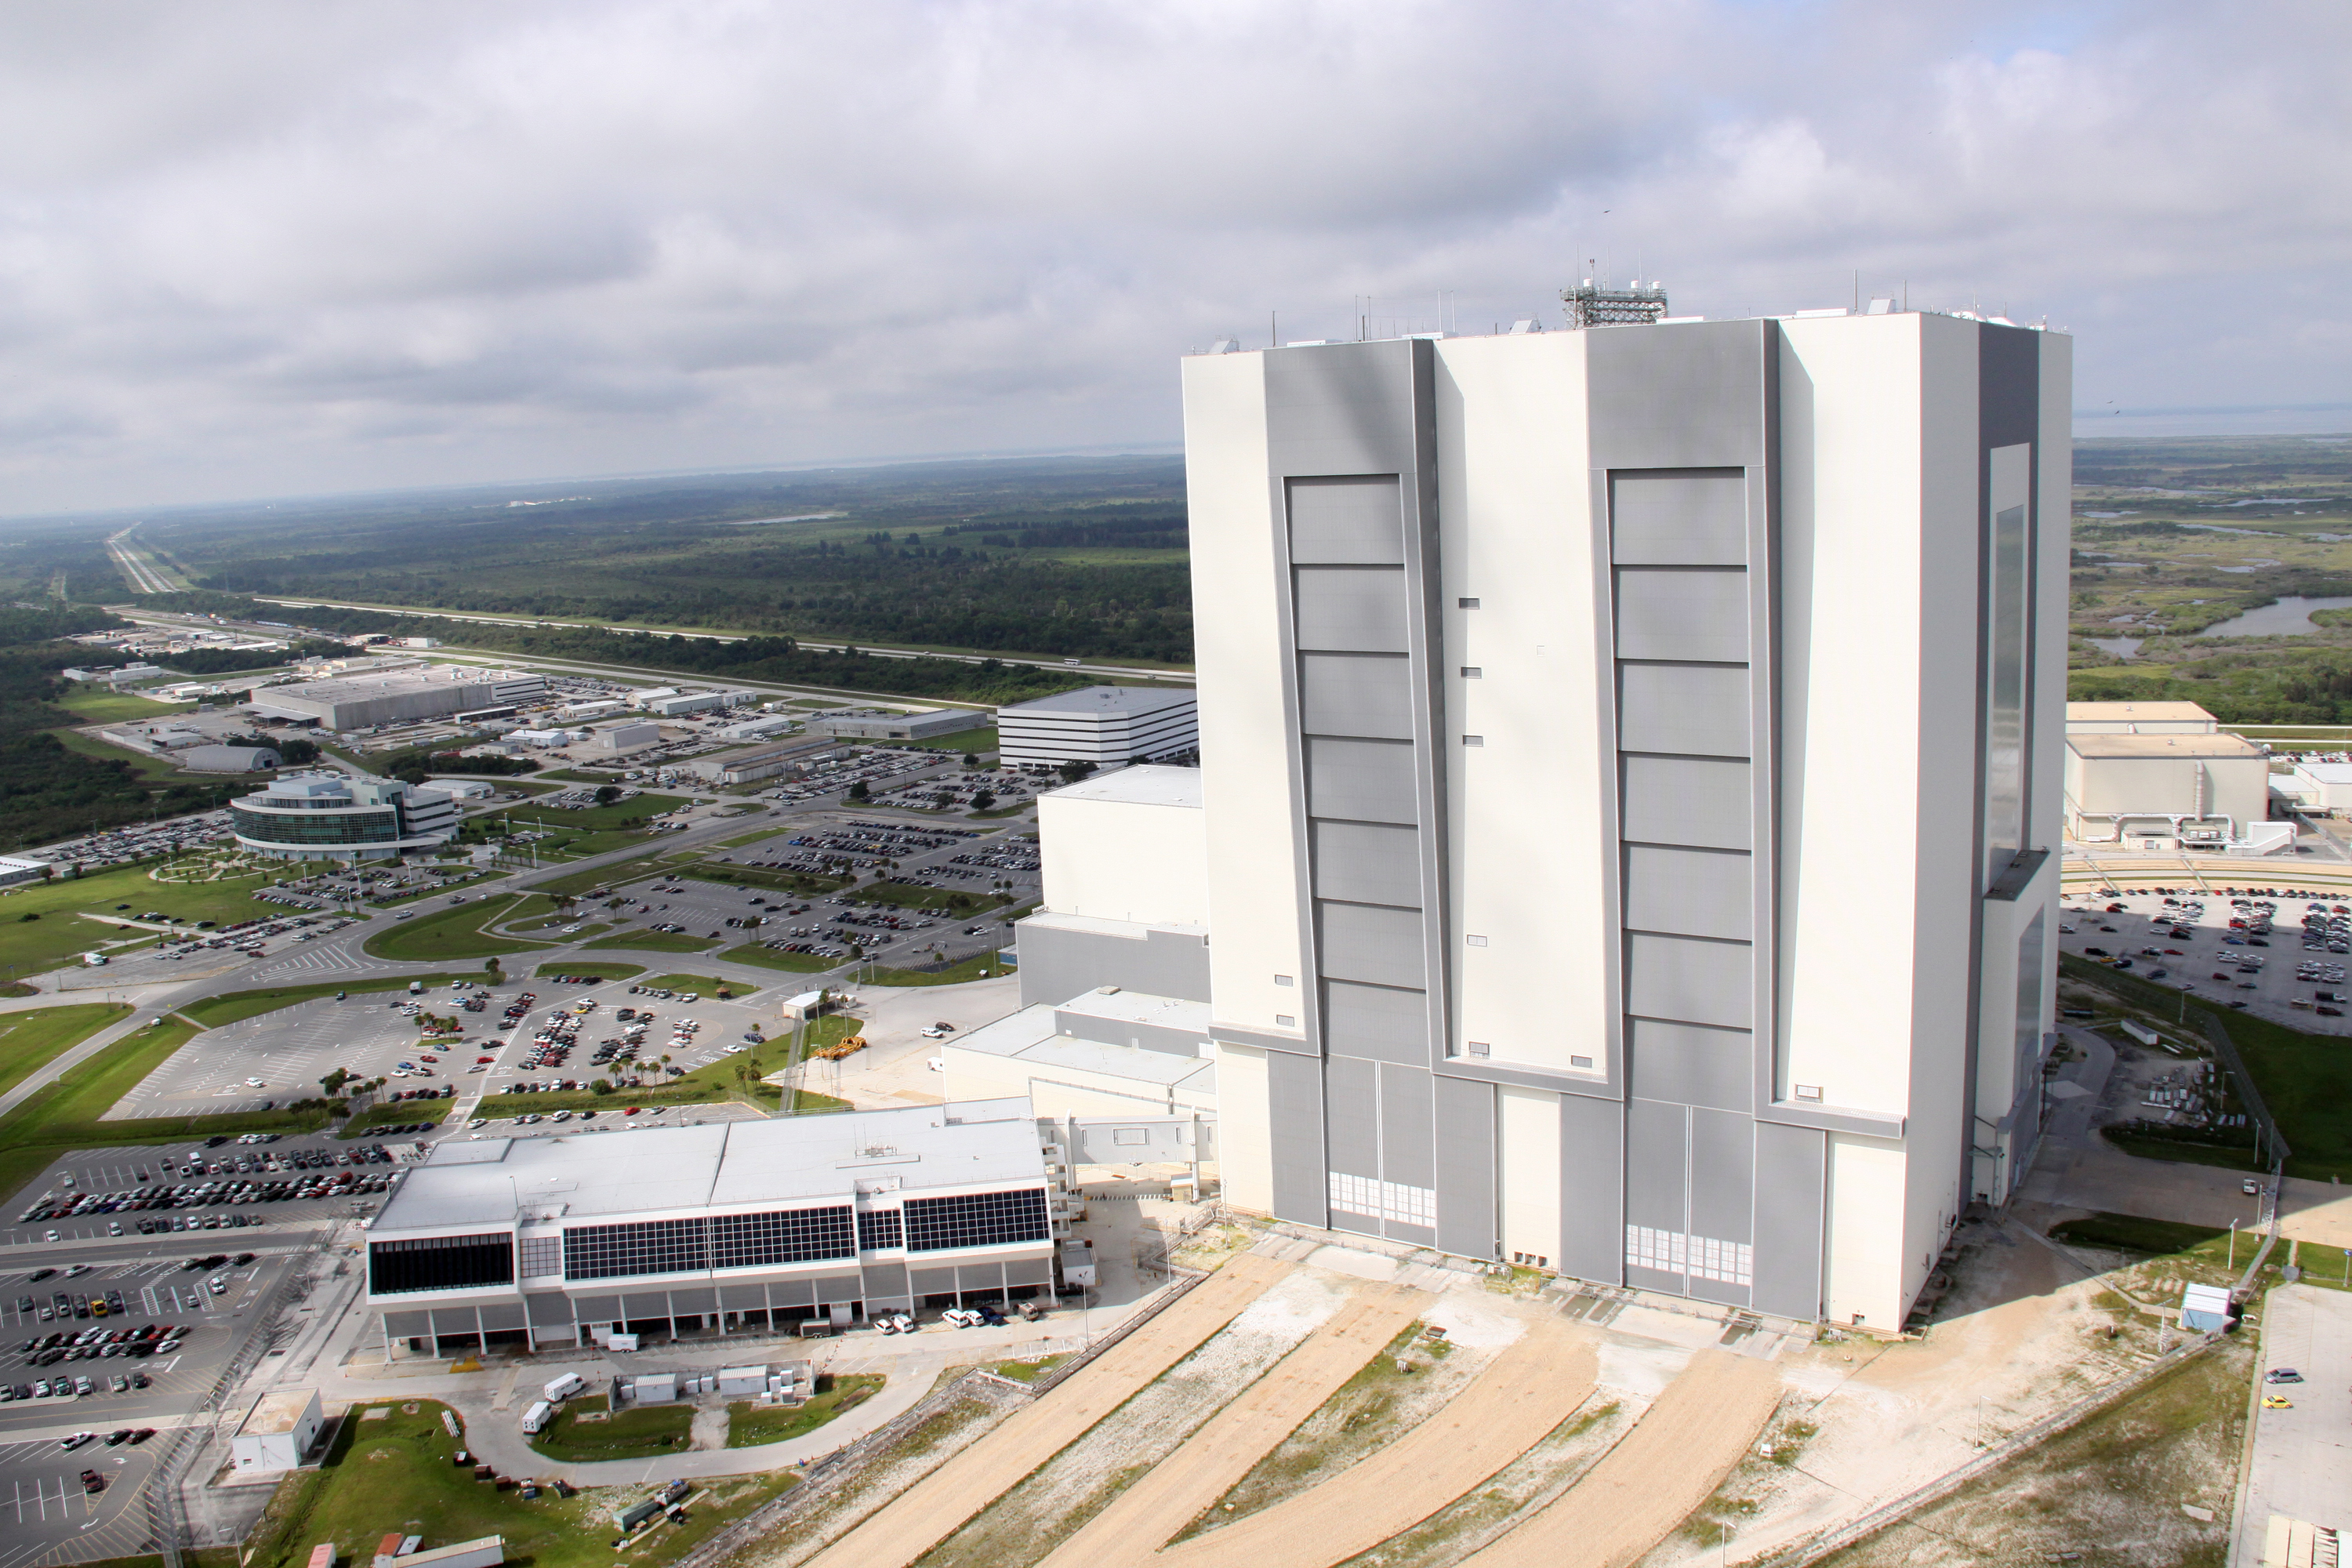 File:Launch Control Center and Vehicle Assembly Building ...